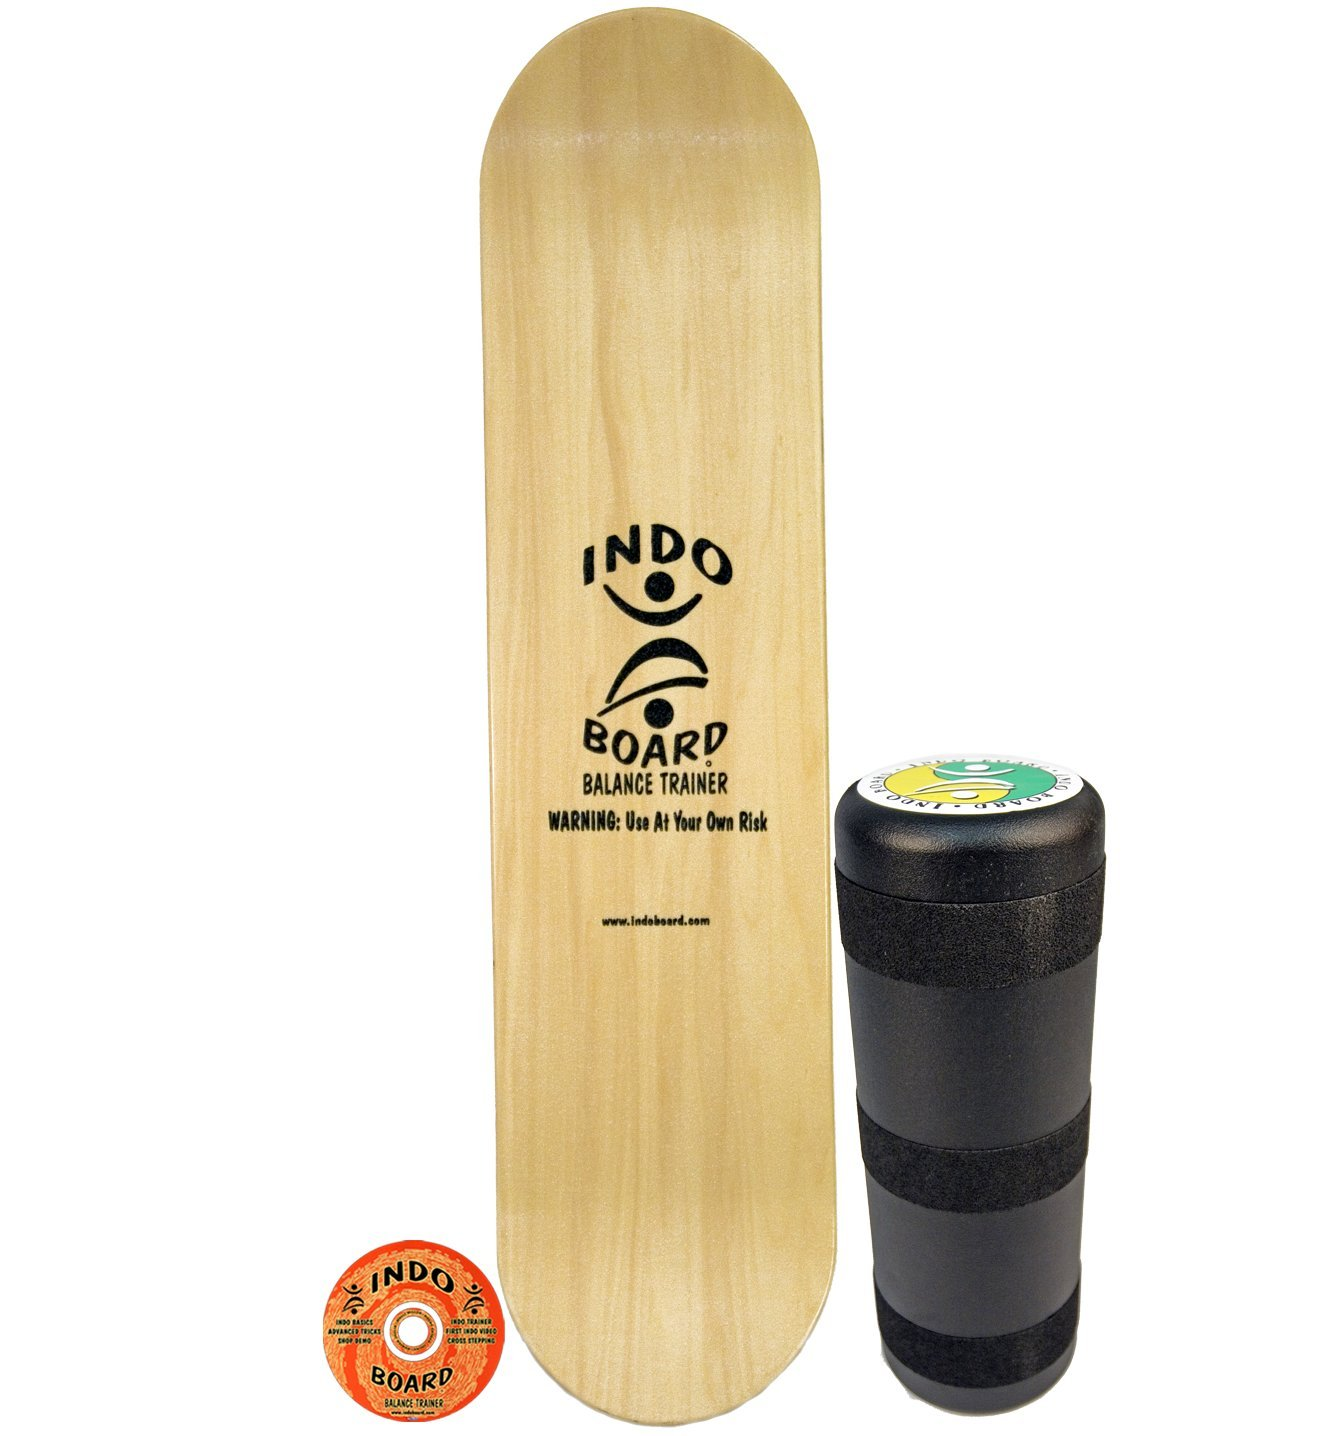 INDO BOARD Kicktail Pro Advanced Balance Board for Surfers, Skaters, Wakesurfers, Snowboarders - 39'' Long Deck with 6.5'' Roller by INDO BOARD (Image #1)